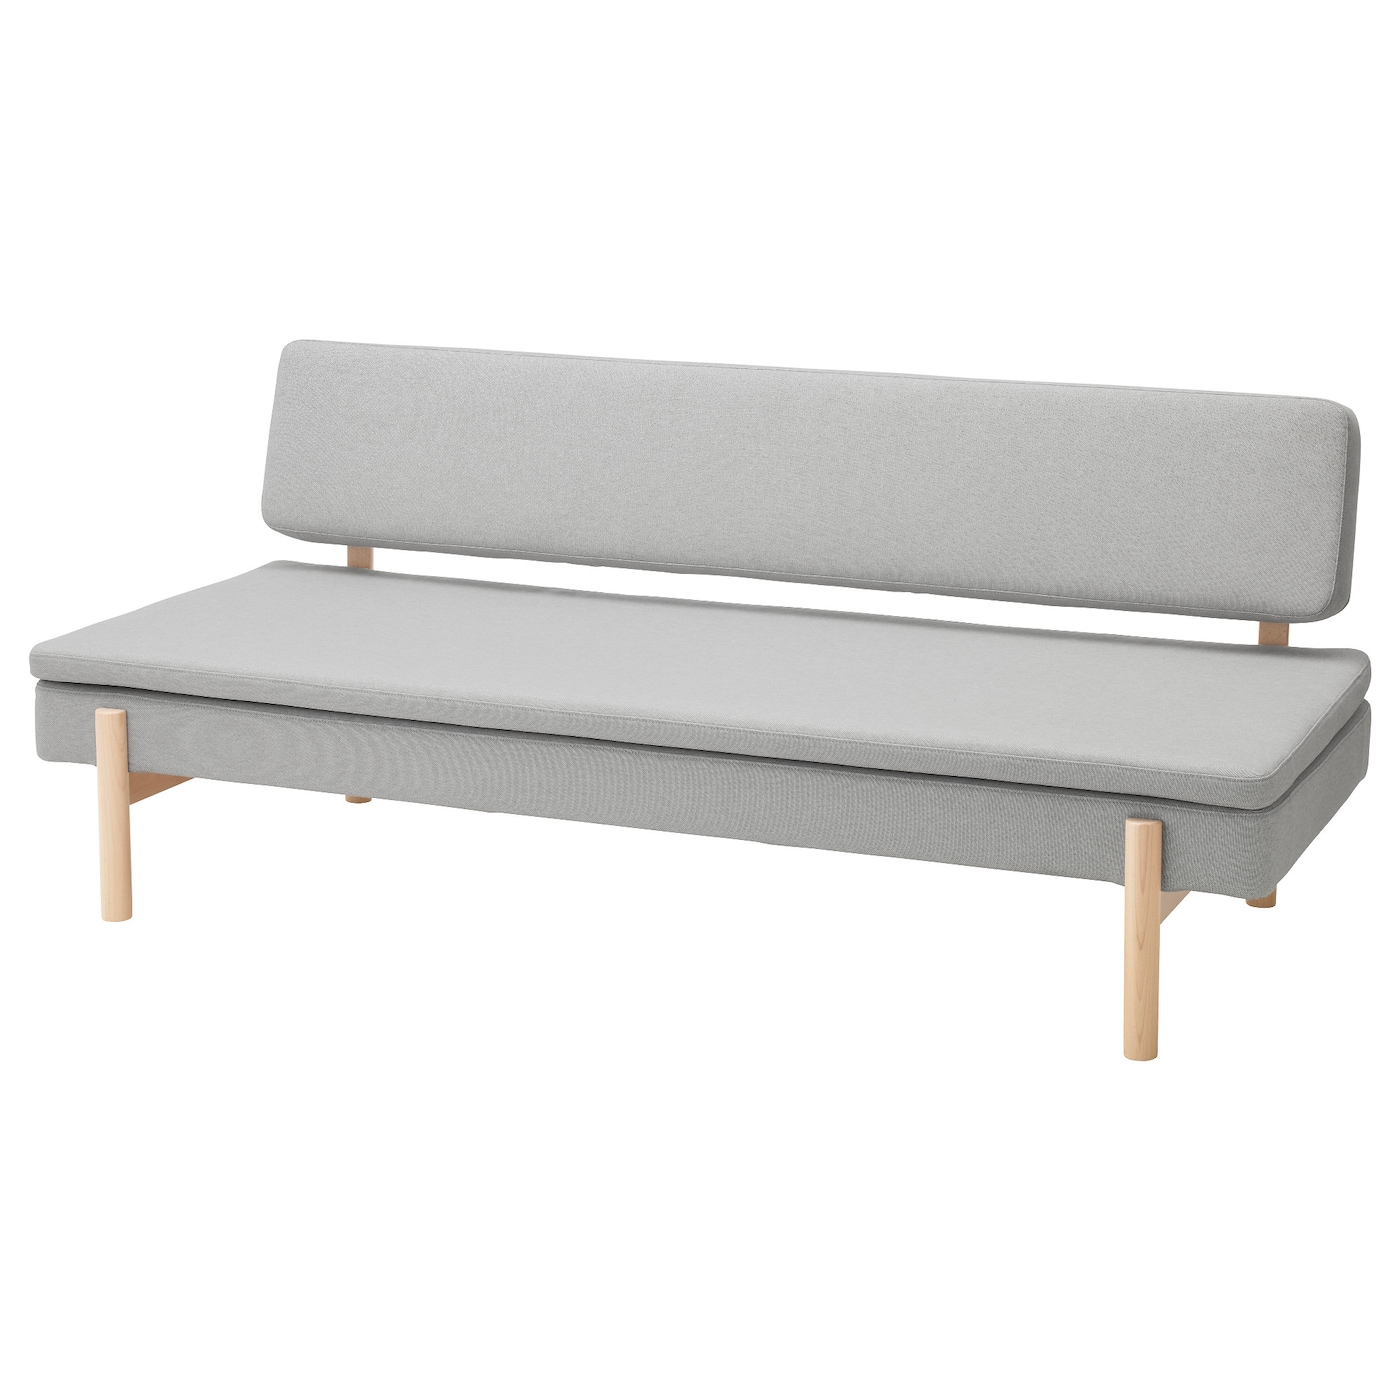 Ypperlig three seat sofa bed ramna light grey ikea for Sofa 120 cm lang